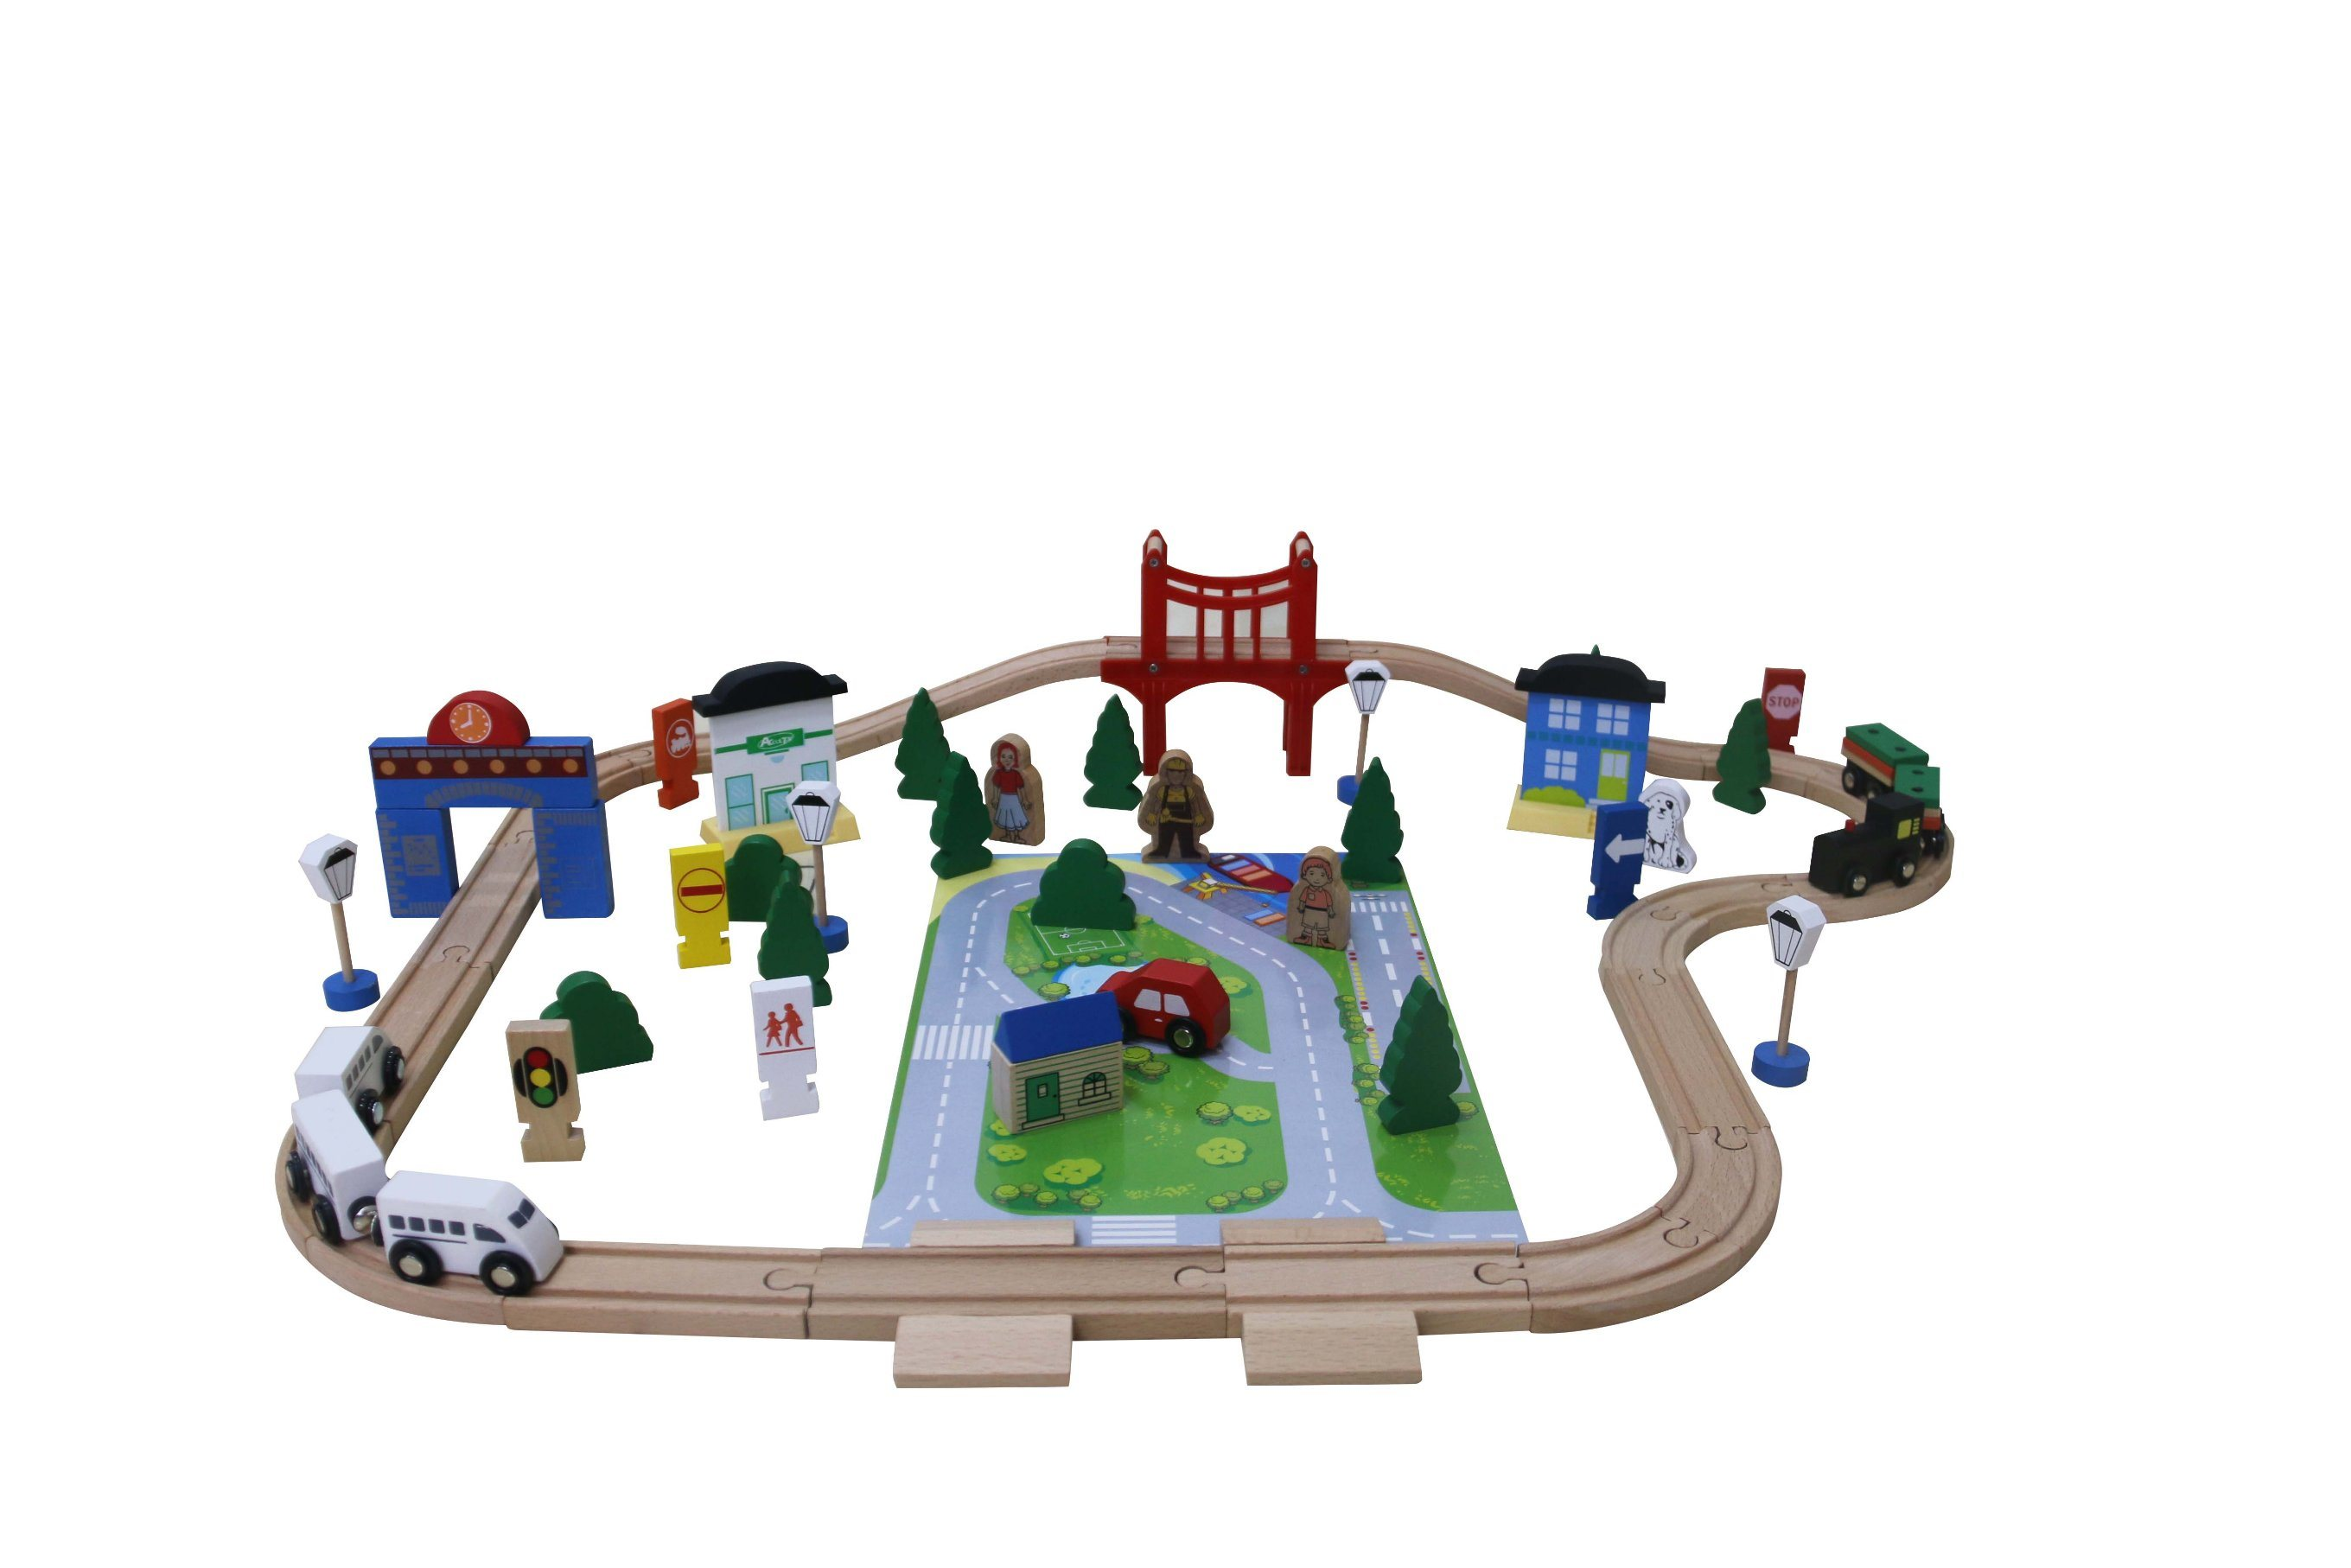 80PCS Wooden Train Set Toy for Kids and Children